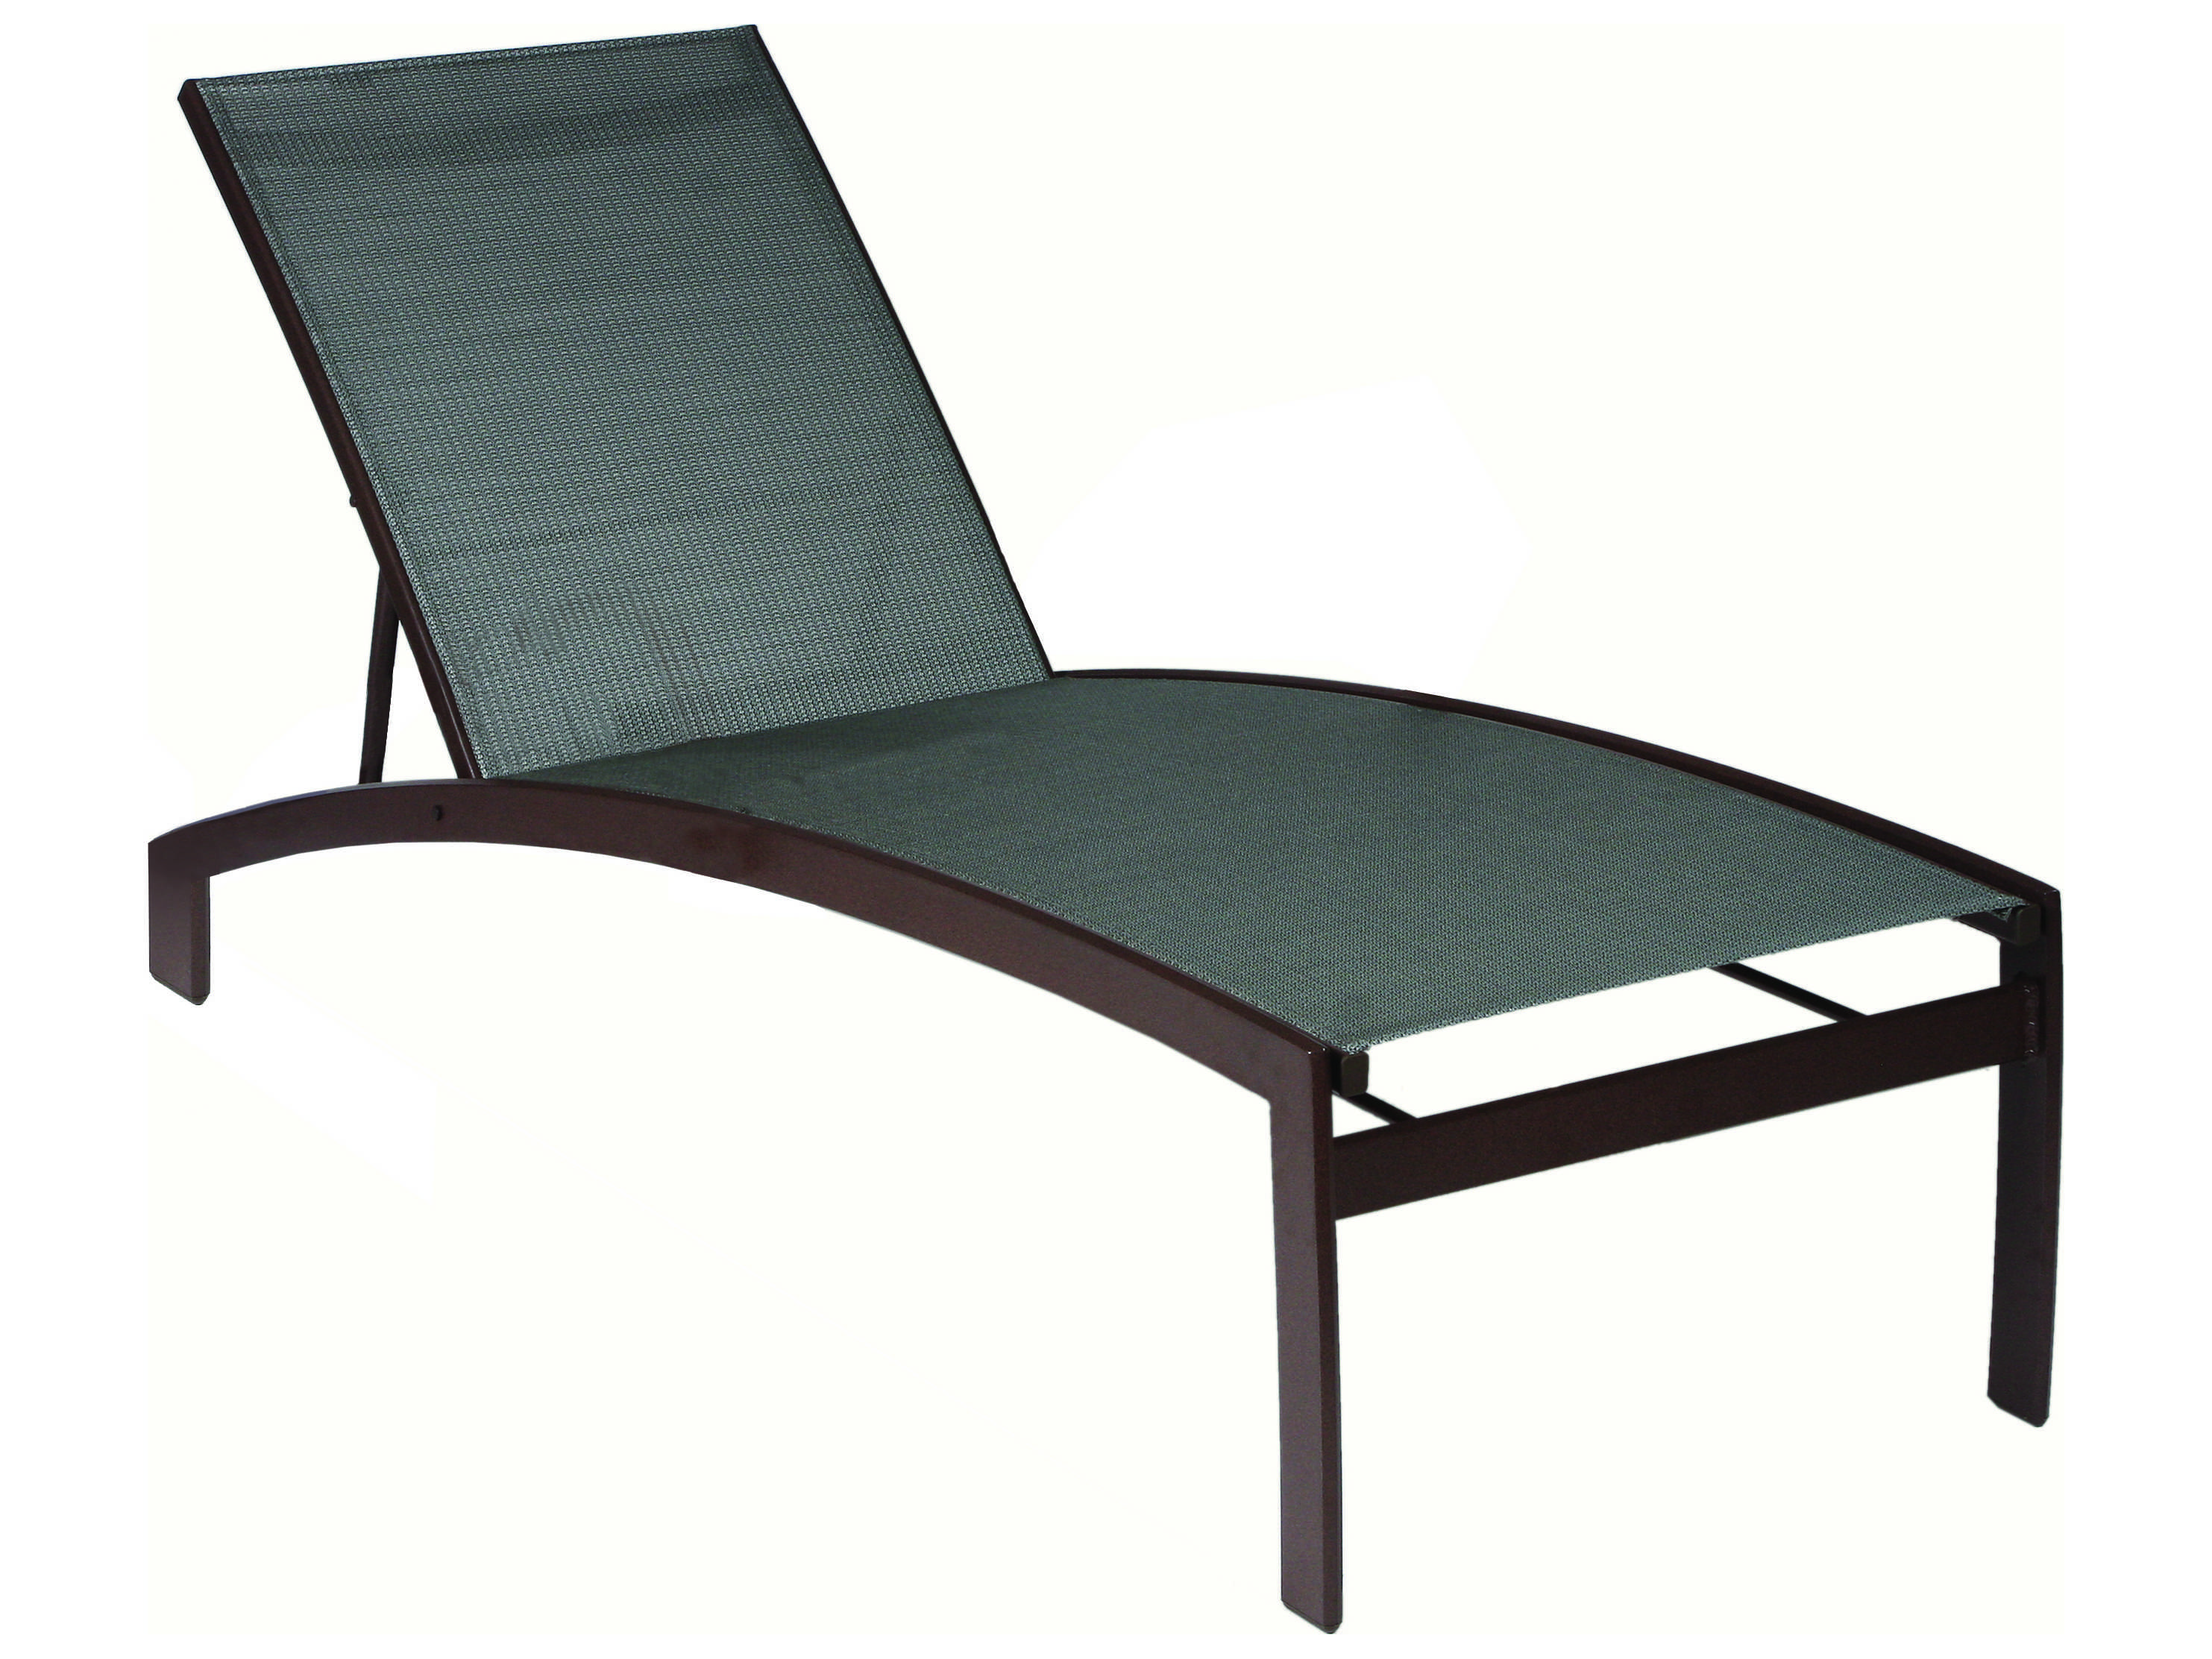 Sling chaise lounge fusion outdoor sling chaise lounge for Chaise restaurant